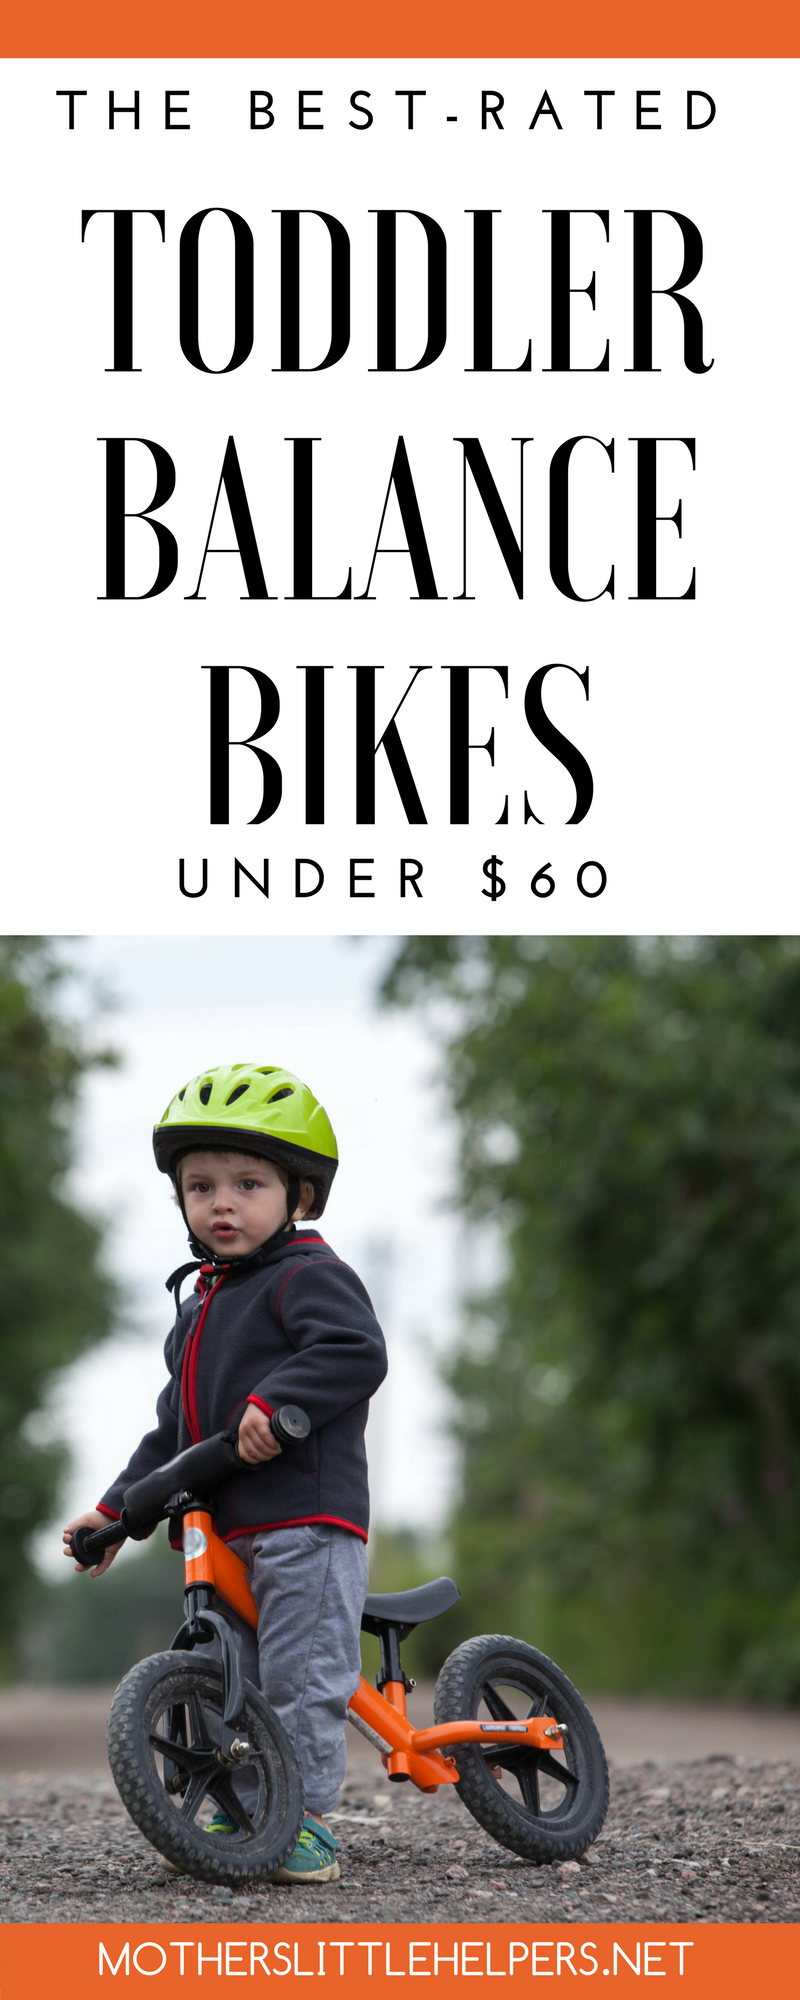 Here you'll find the Best-Rated Toddler Balance Bikes under $60. Are you planning to buy your toddler a balance bike for Christmas? A toddler bike is a unique gift and stands above the other children's toys. It helps your child learn to balance early on, so that it's easier to learn a real bicycle. Wooden strider bikes are very popular, but it's imperative to read the reviews to find out which one will get you the most bang for your buck. This article will take you through the pros and cons when deciding which glider bike to buy.